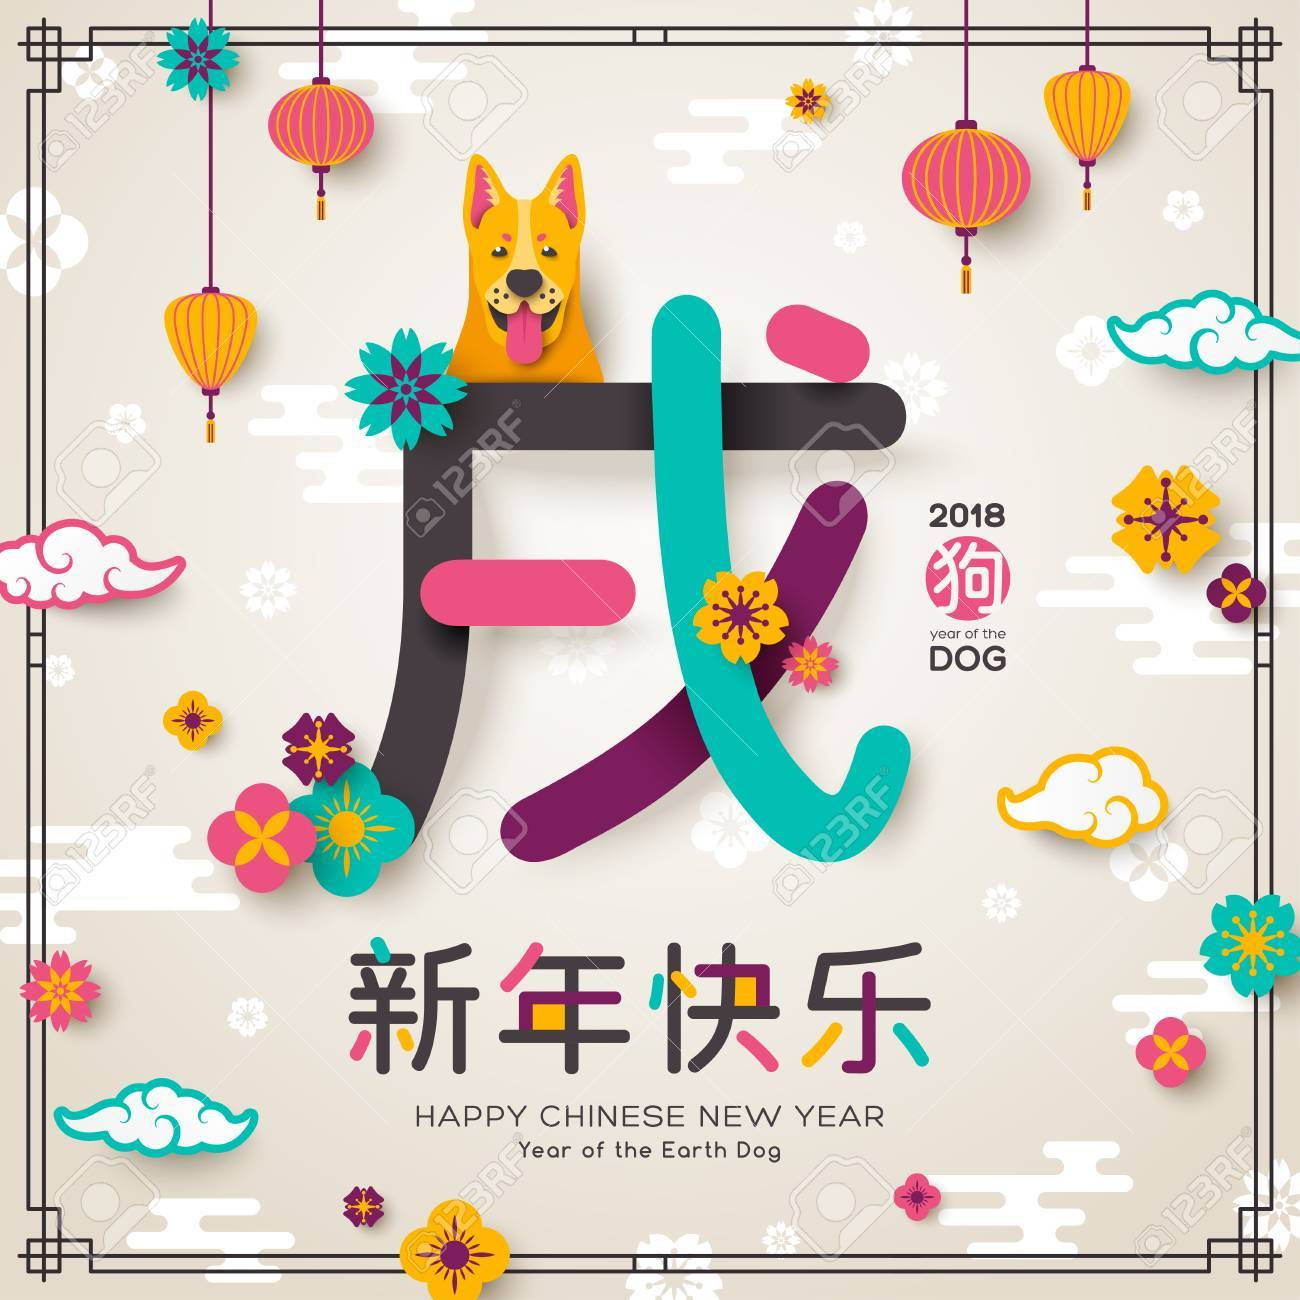 2018 chinese new year greeting card with hieroglyph earth dog 2018 chinese new year greeting card with hieroglyph earth dog clouds and flowers on m4hsunfo